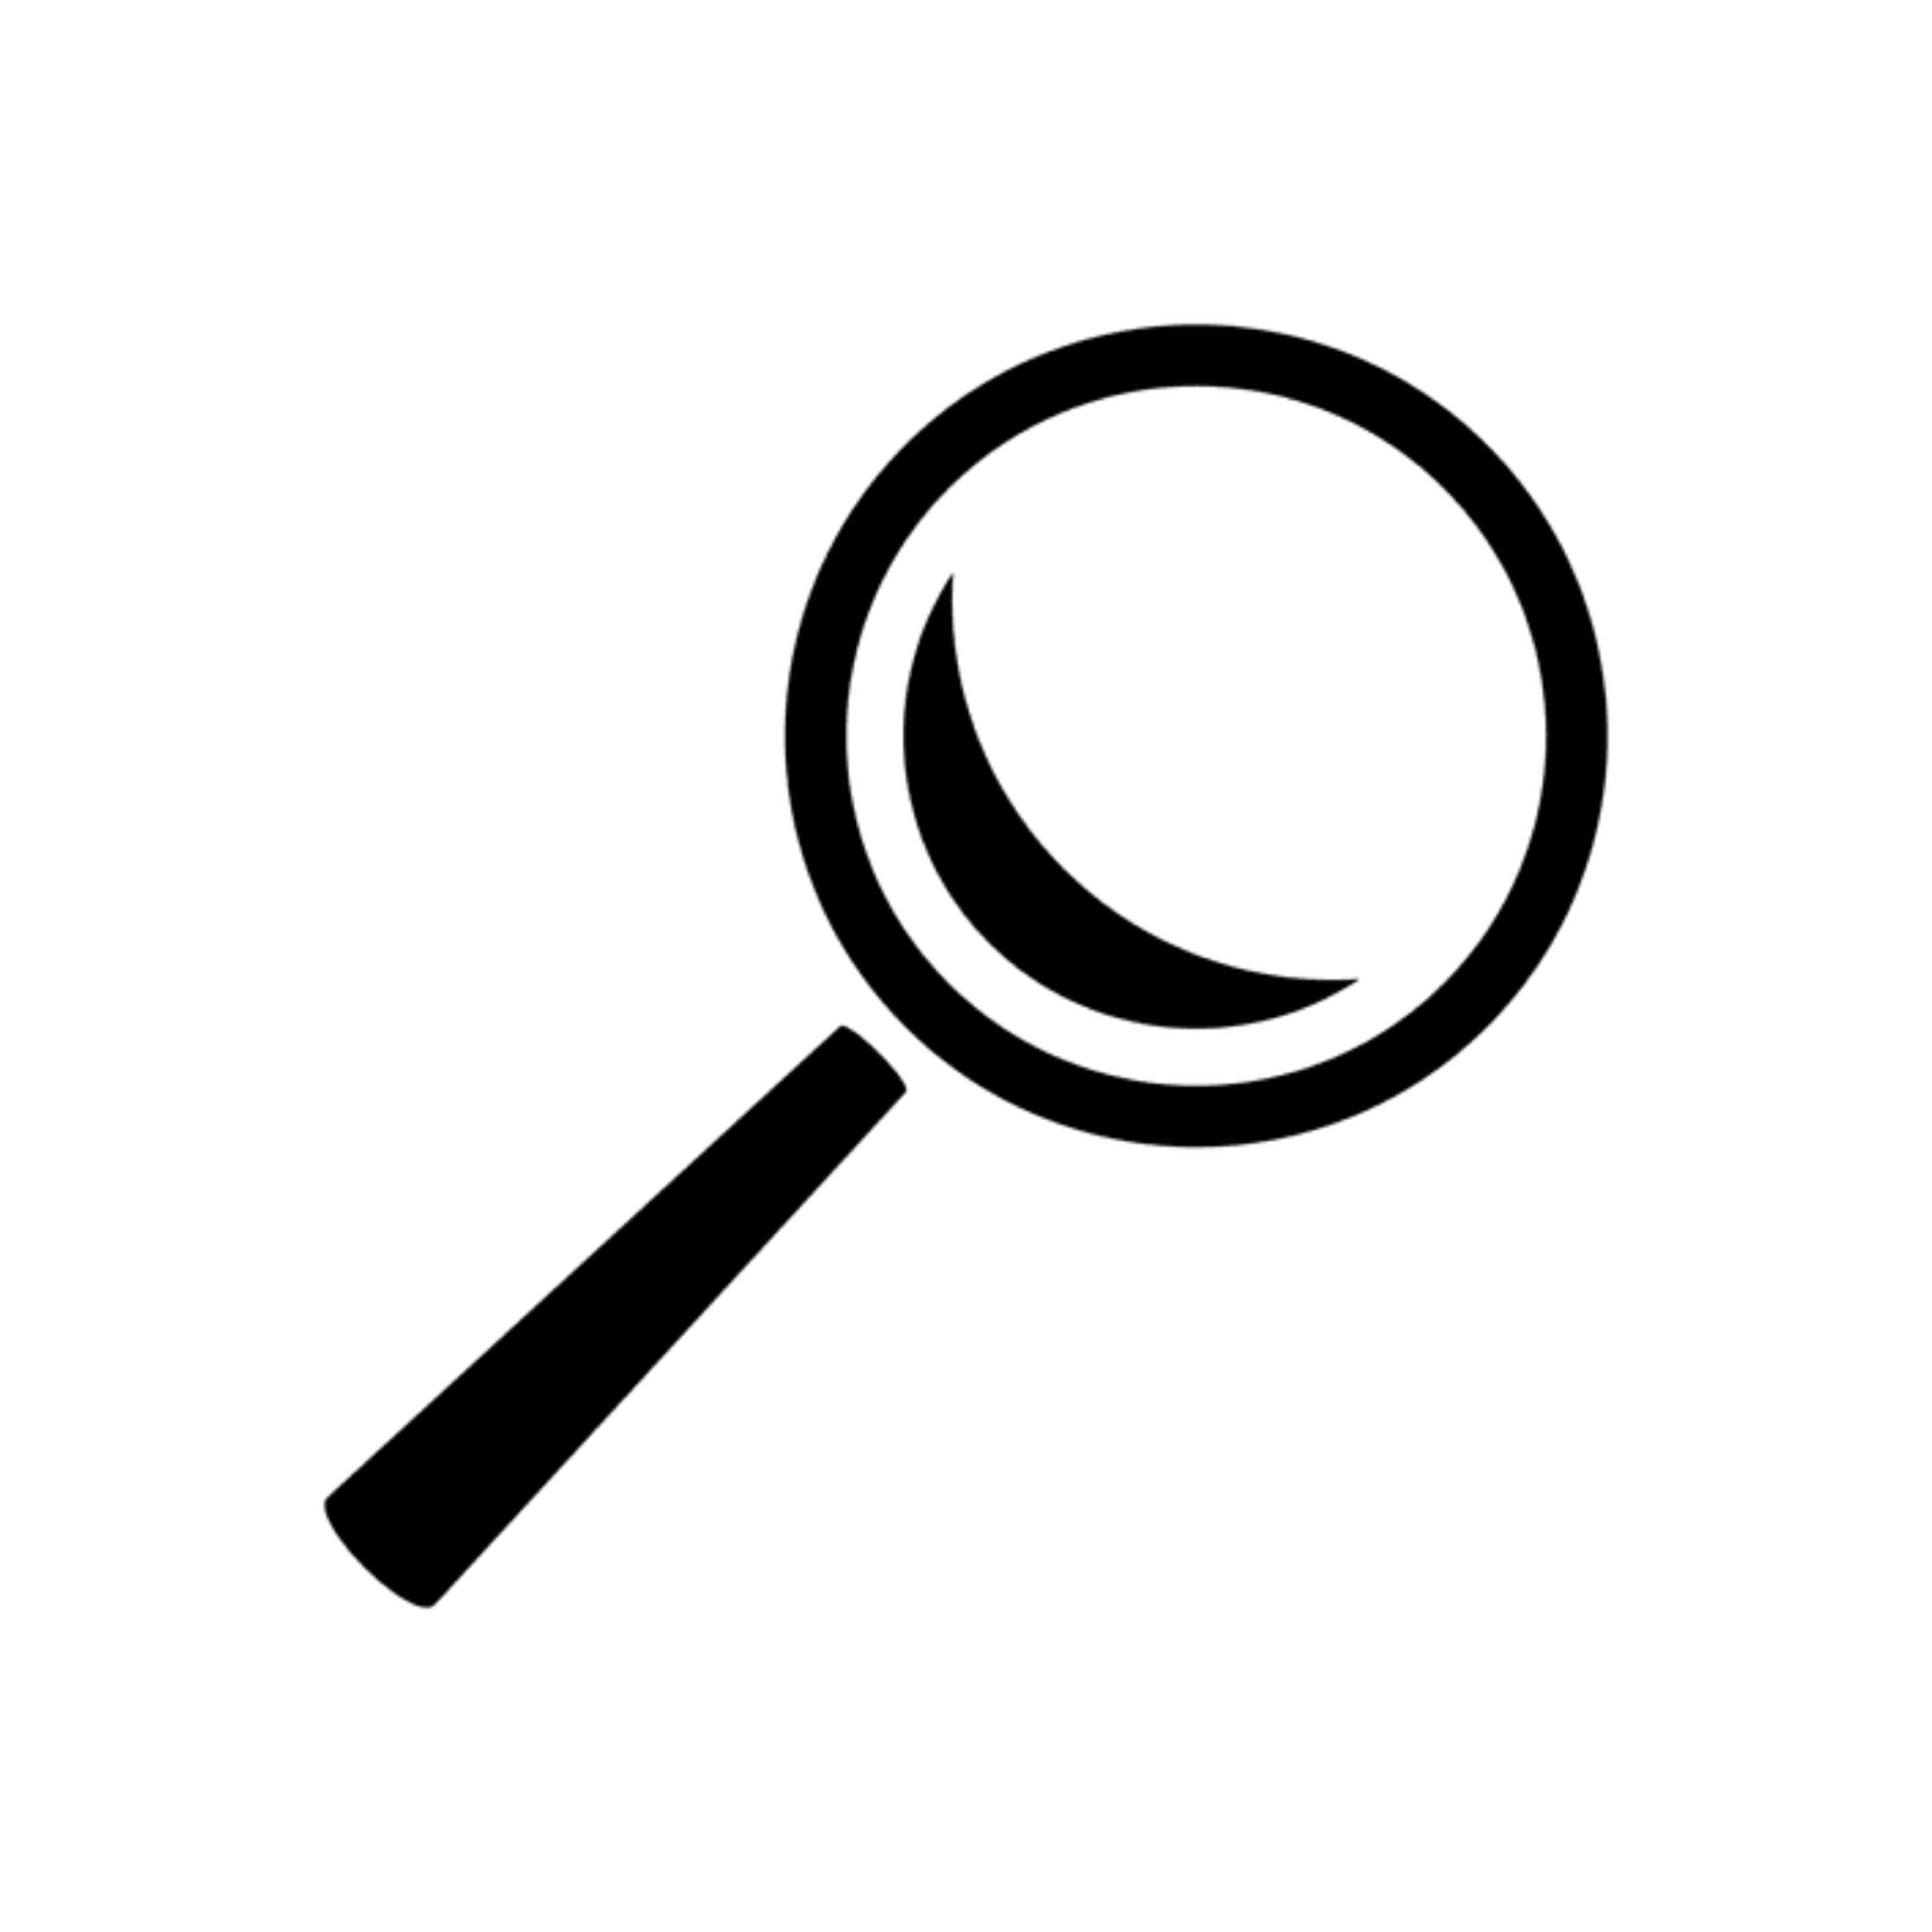 Freetoedit Magnifyingglass Magnifying Glass Lupa Zoom